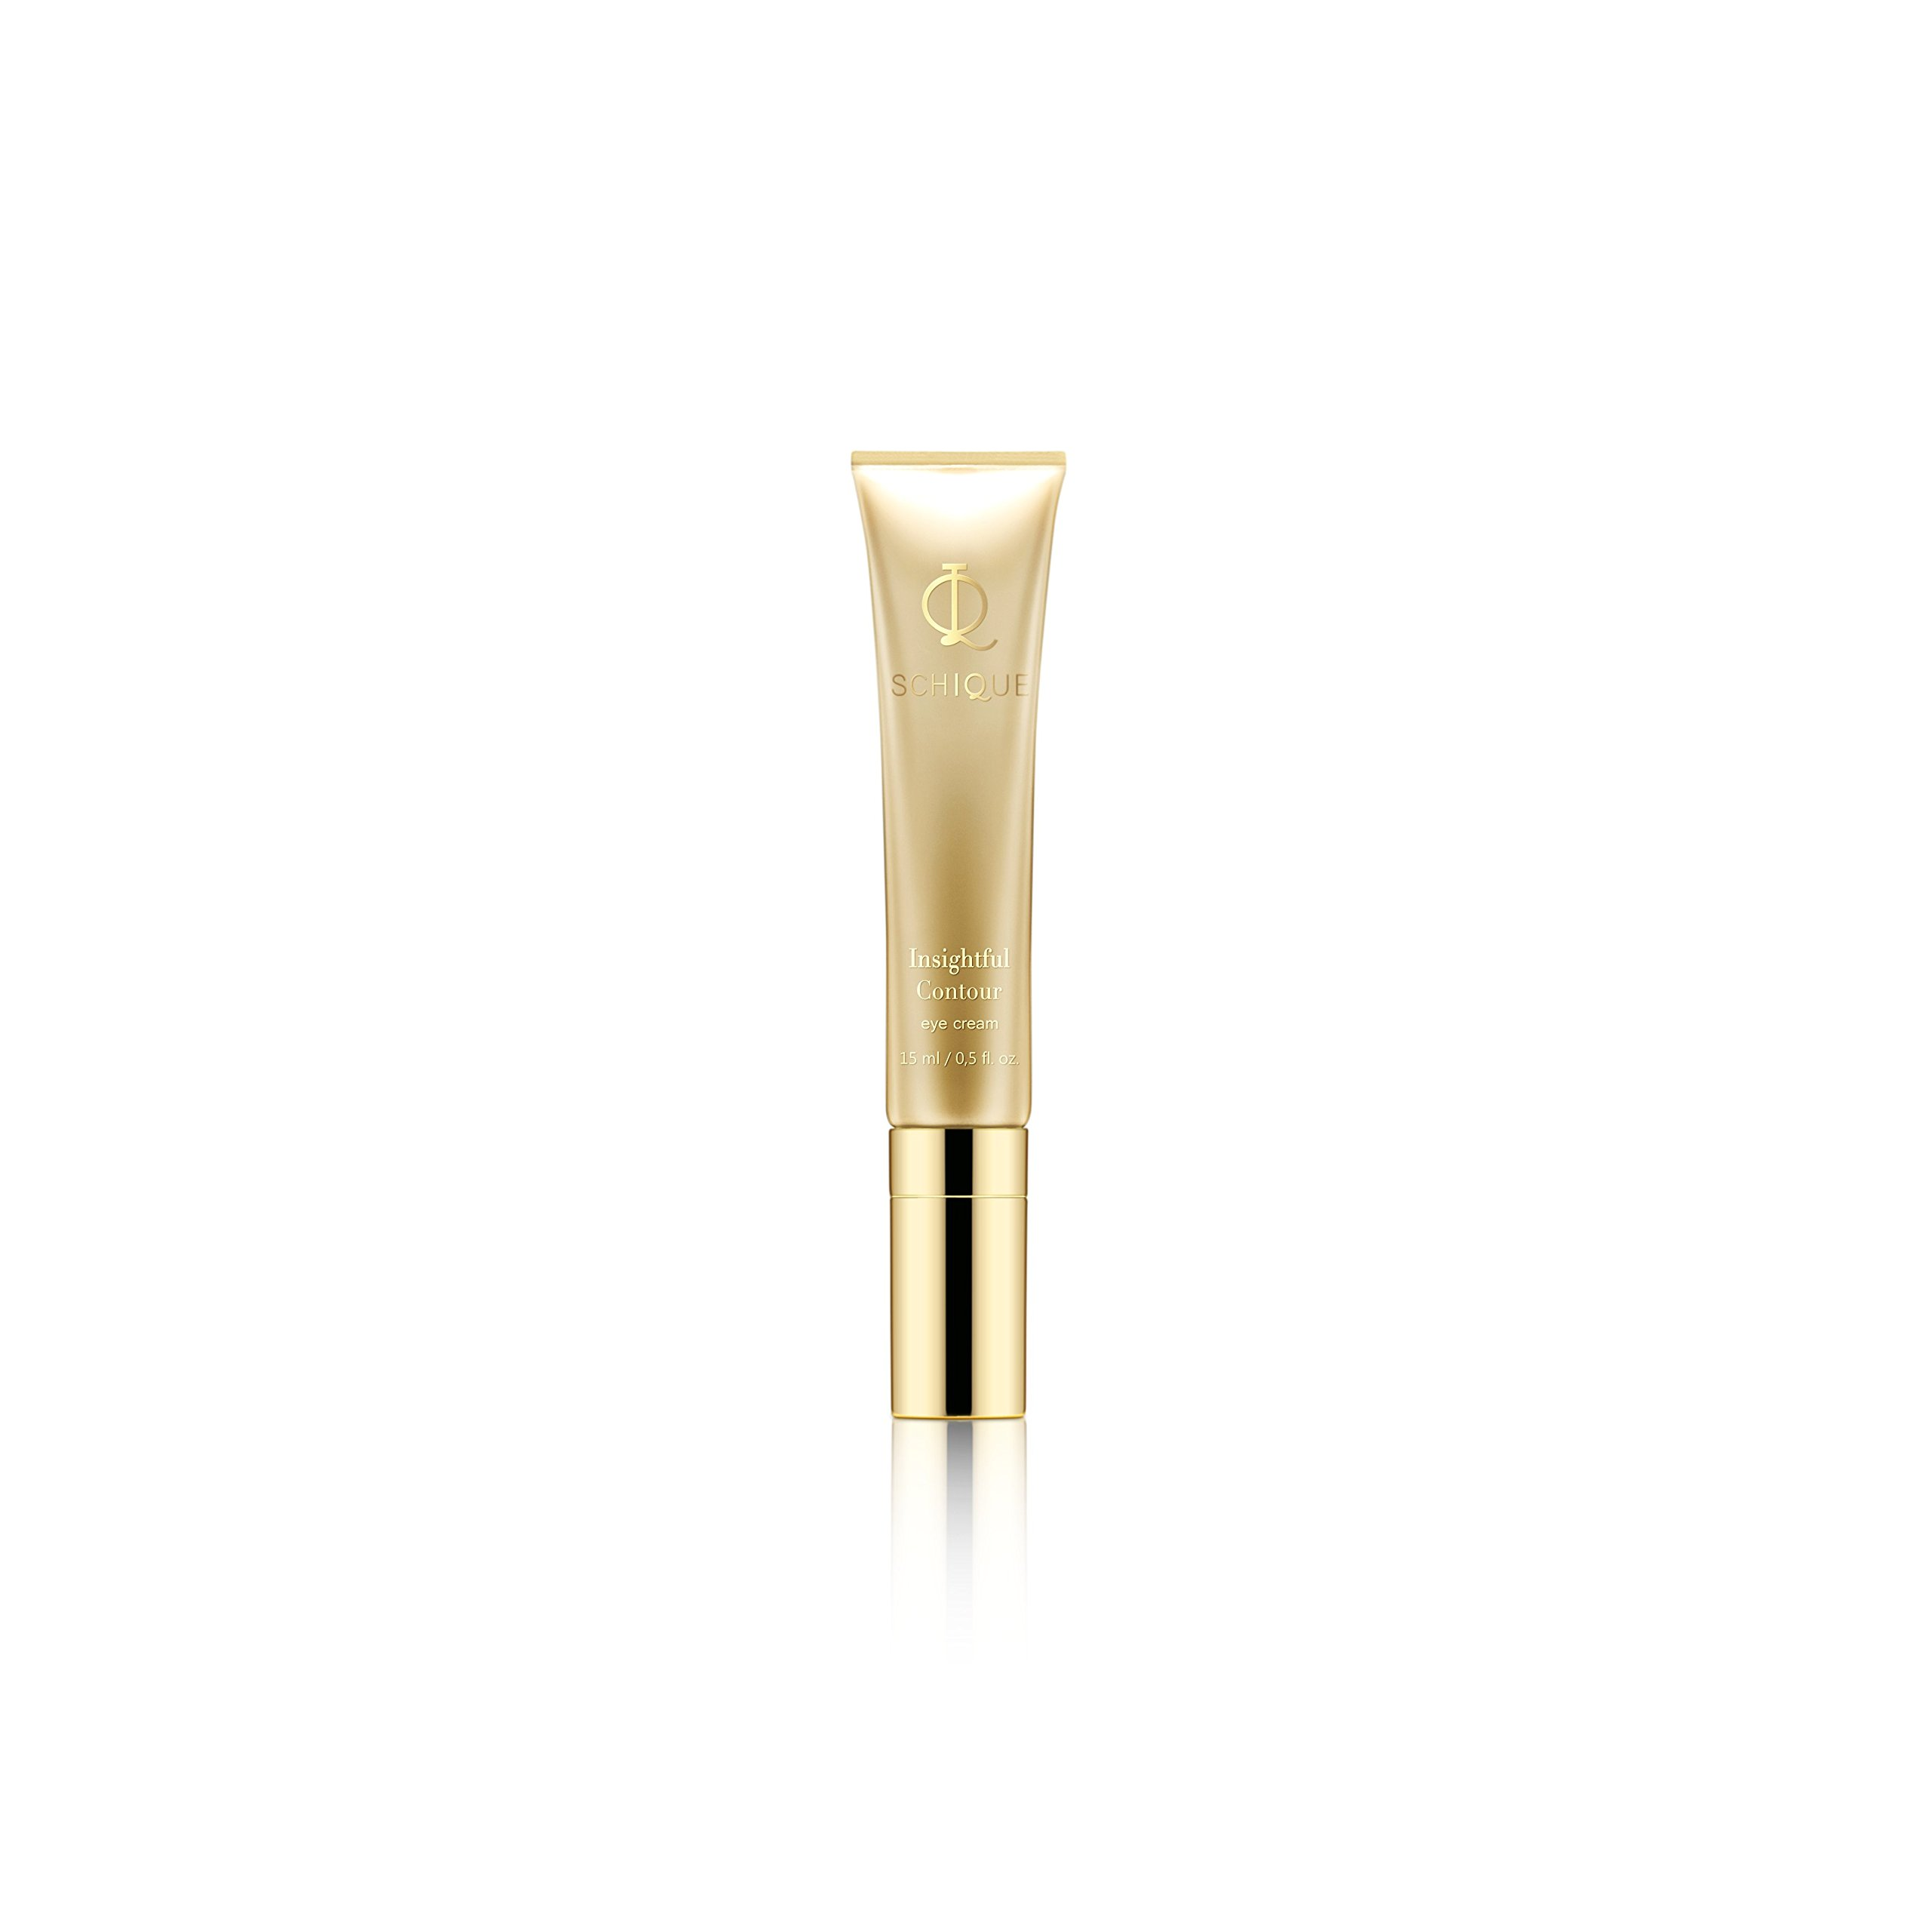 Schique Insightful Contour Eye Cream